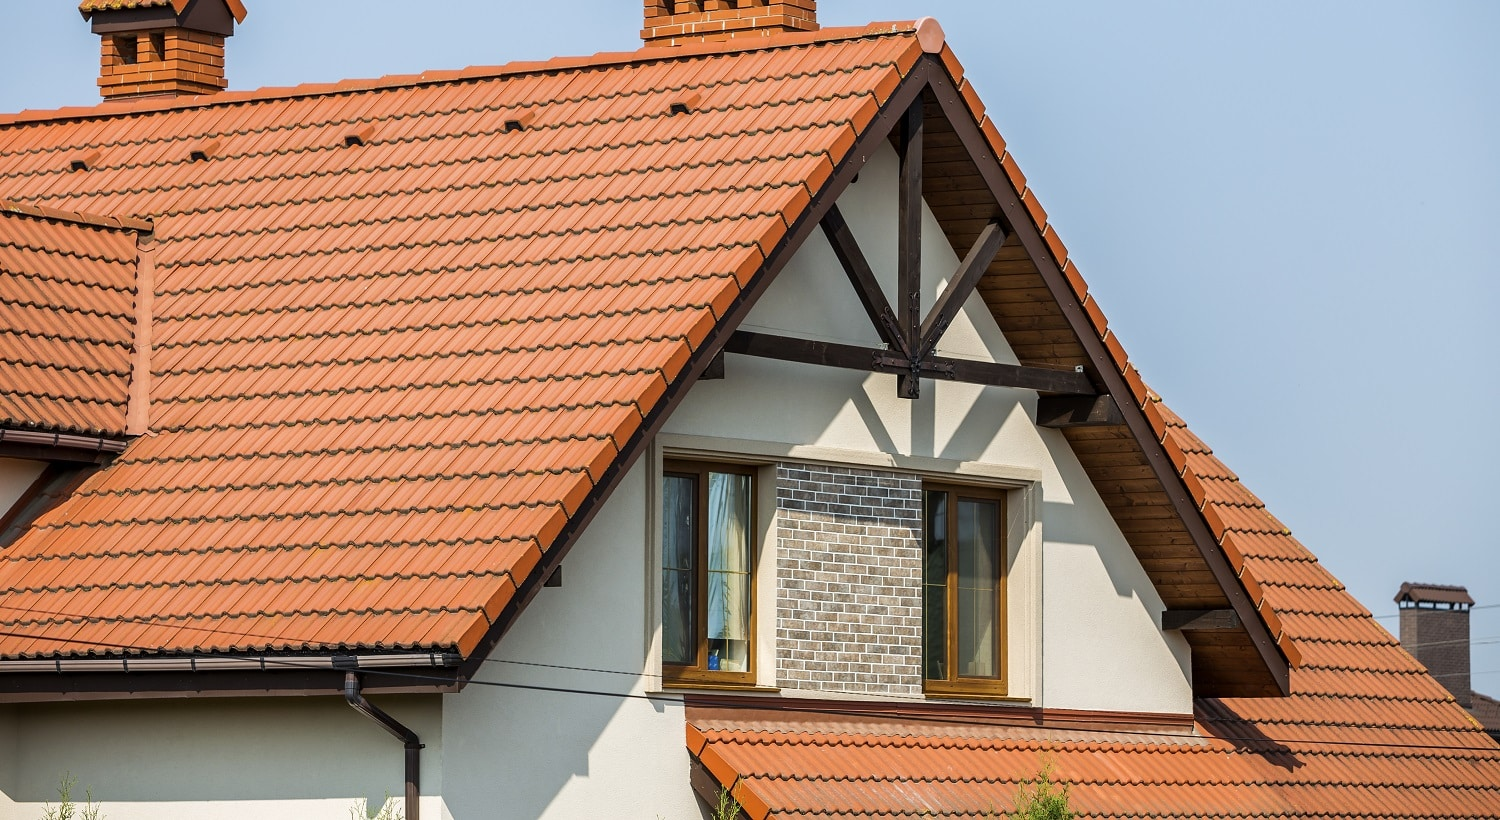 Top of big modern expensive residential house cottage with steep shingled brown roof, high brick chimneys, stucco walls, gutter system and plastic attic windows on blue sky copy space background.